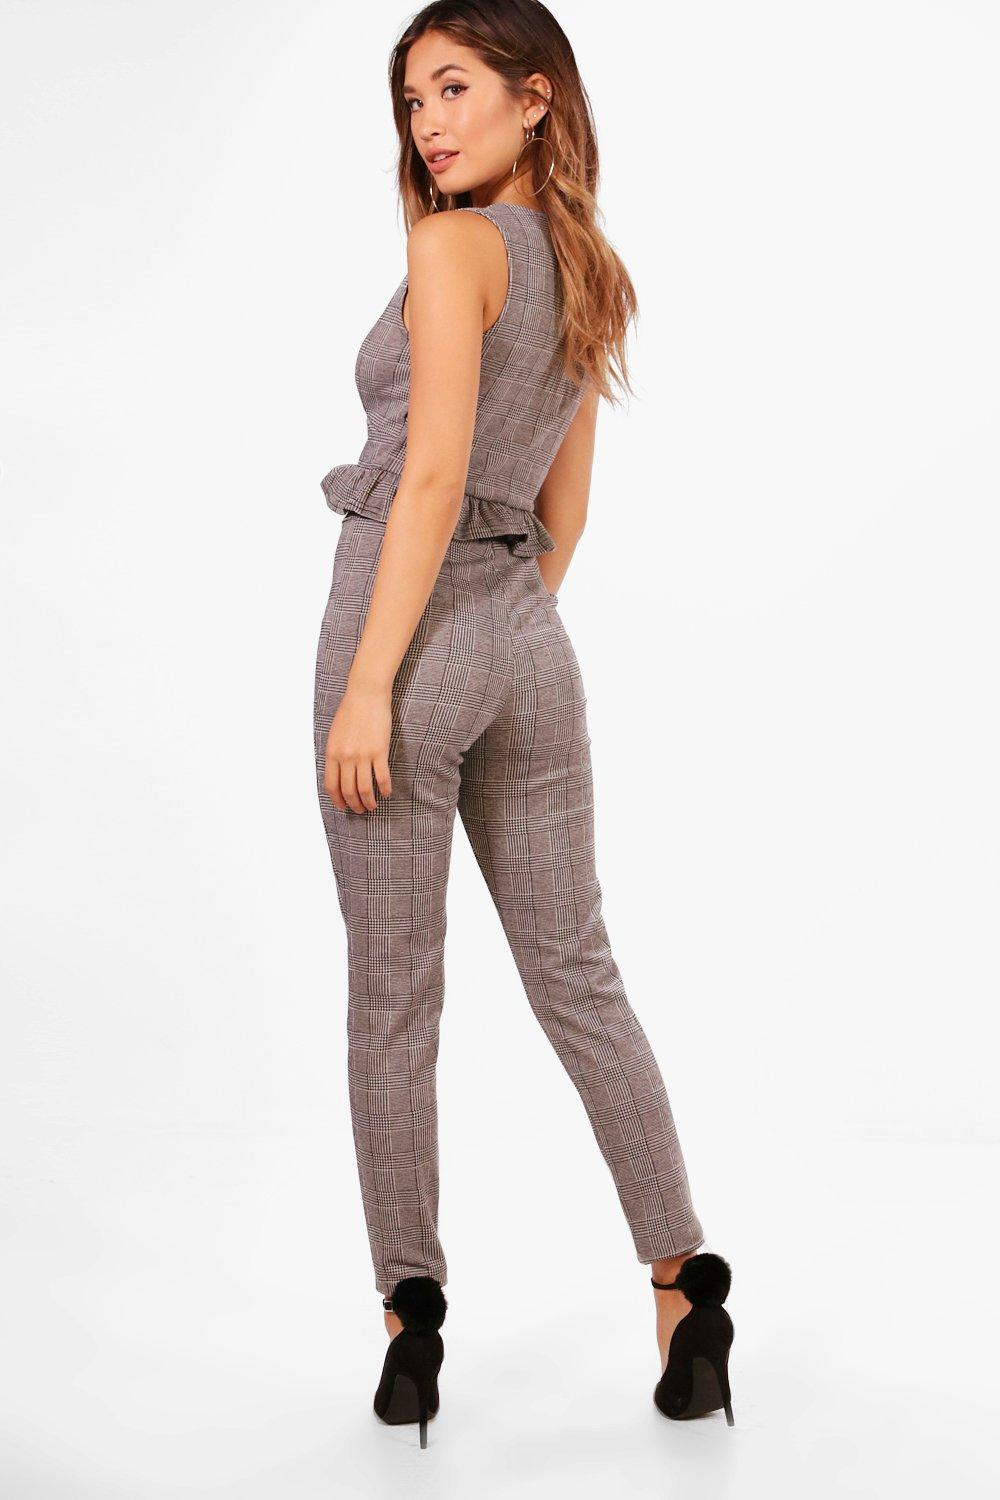 Crop and Set Check Skinny Plunge Trouser grey 7w5605